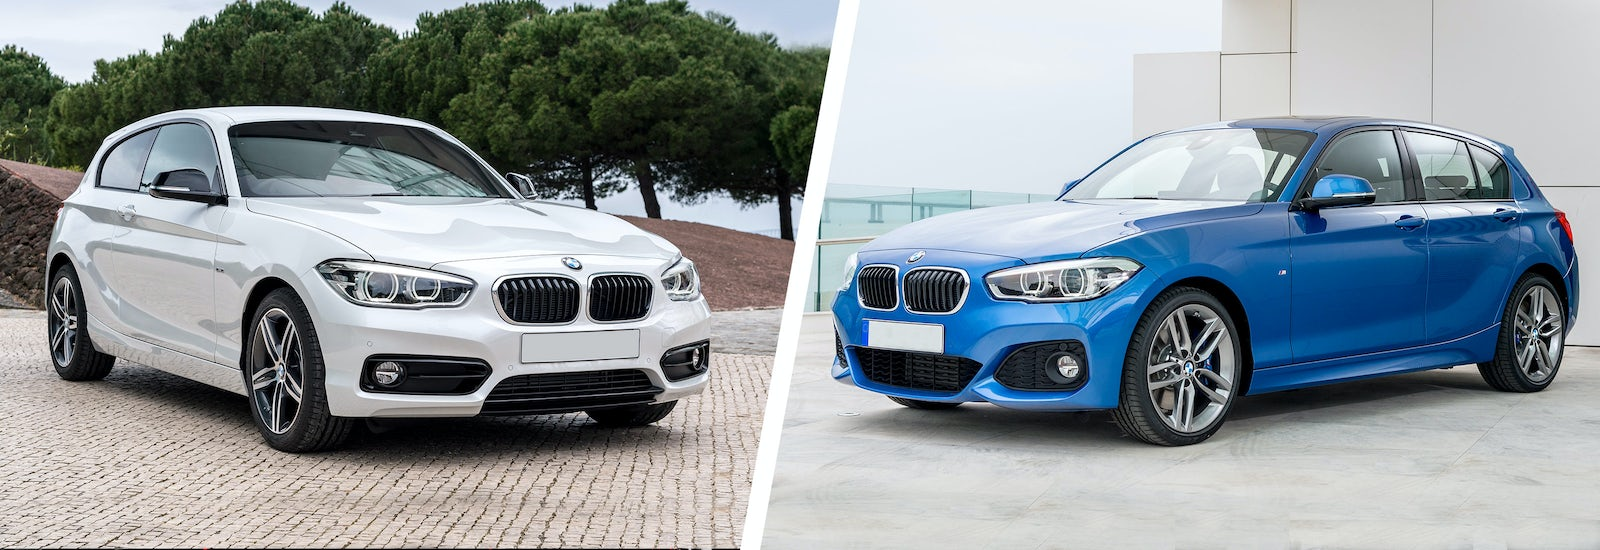 BMW 1 Series M Sport Vs Non Exterior